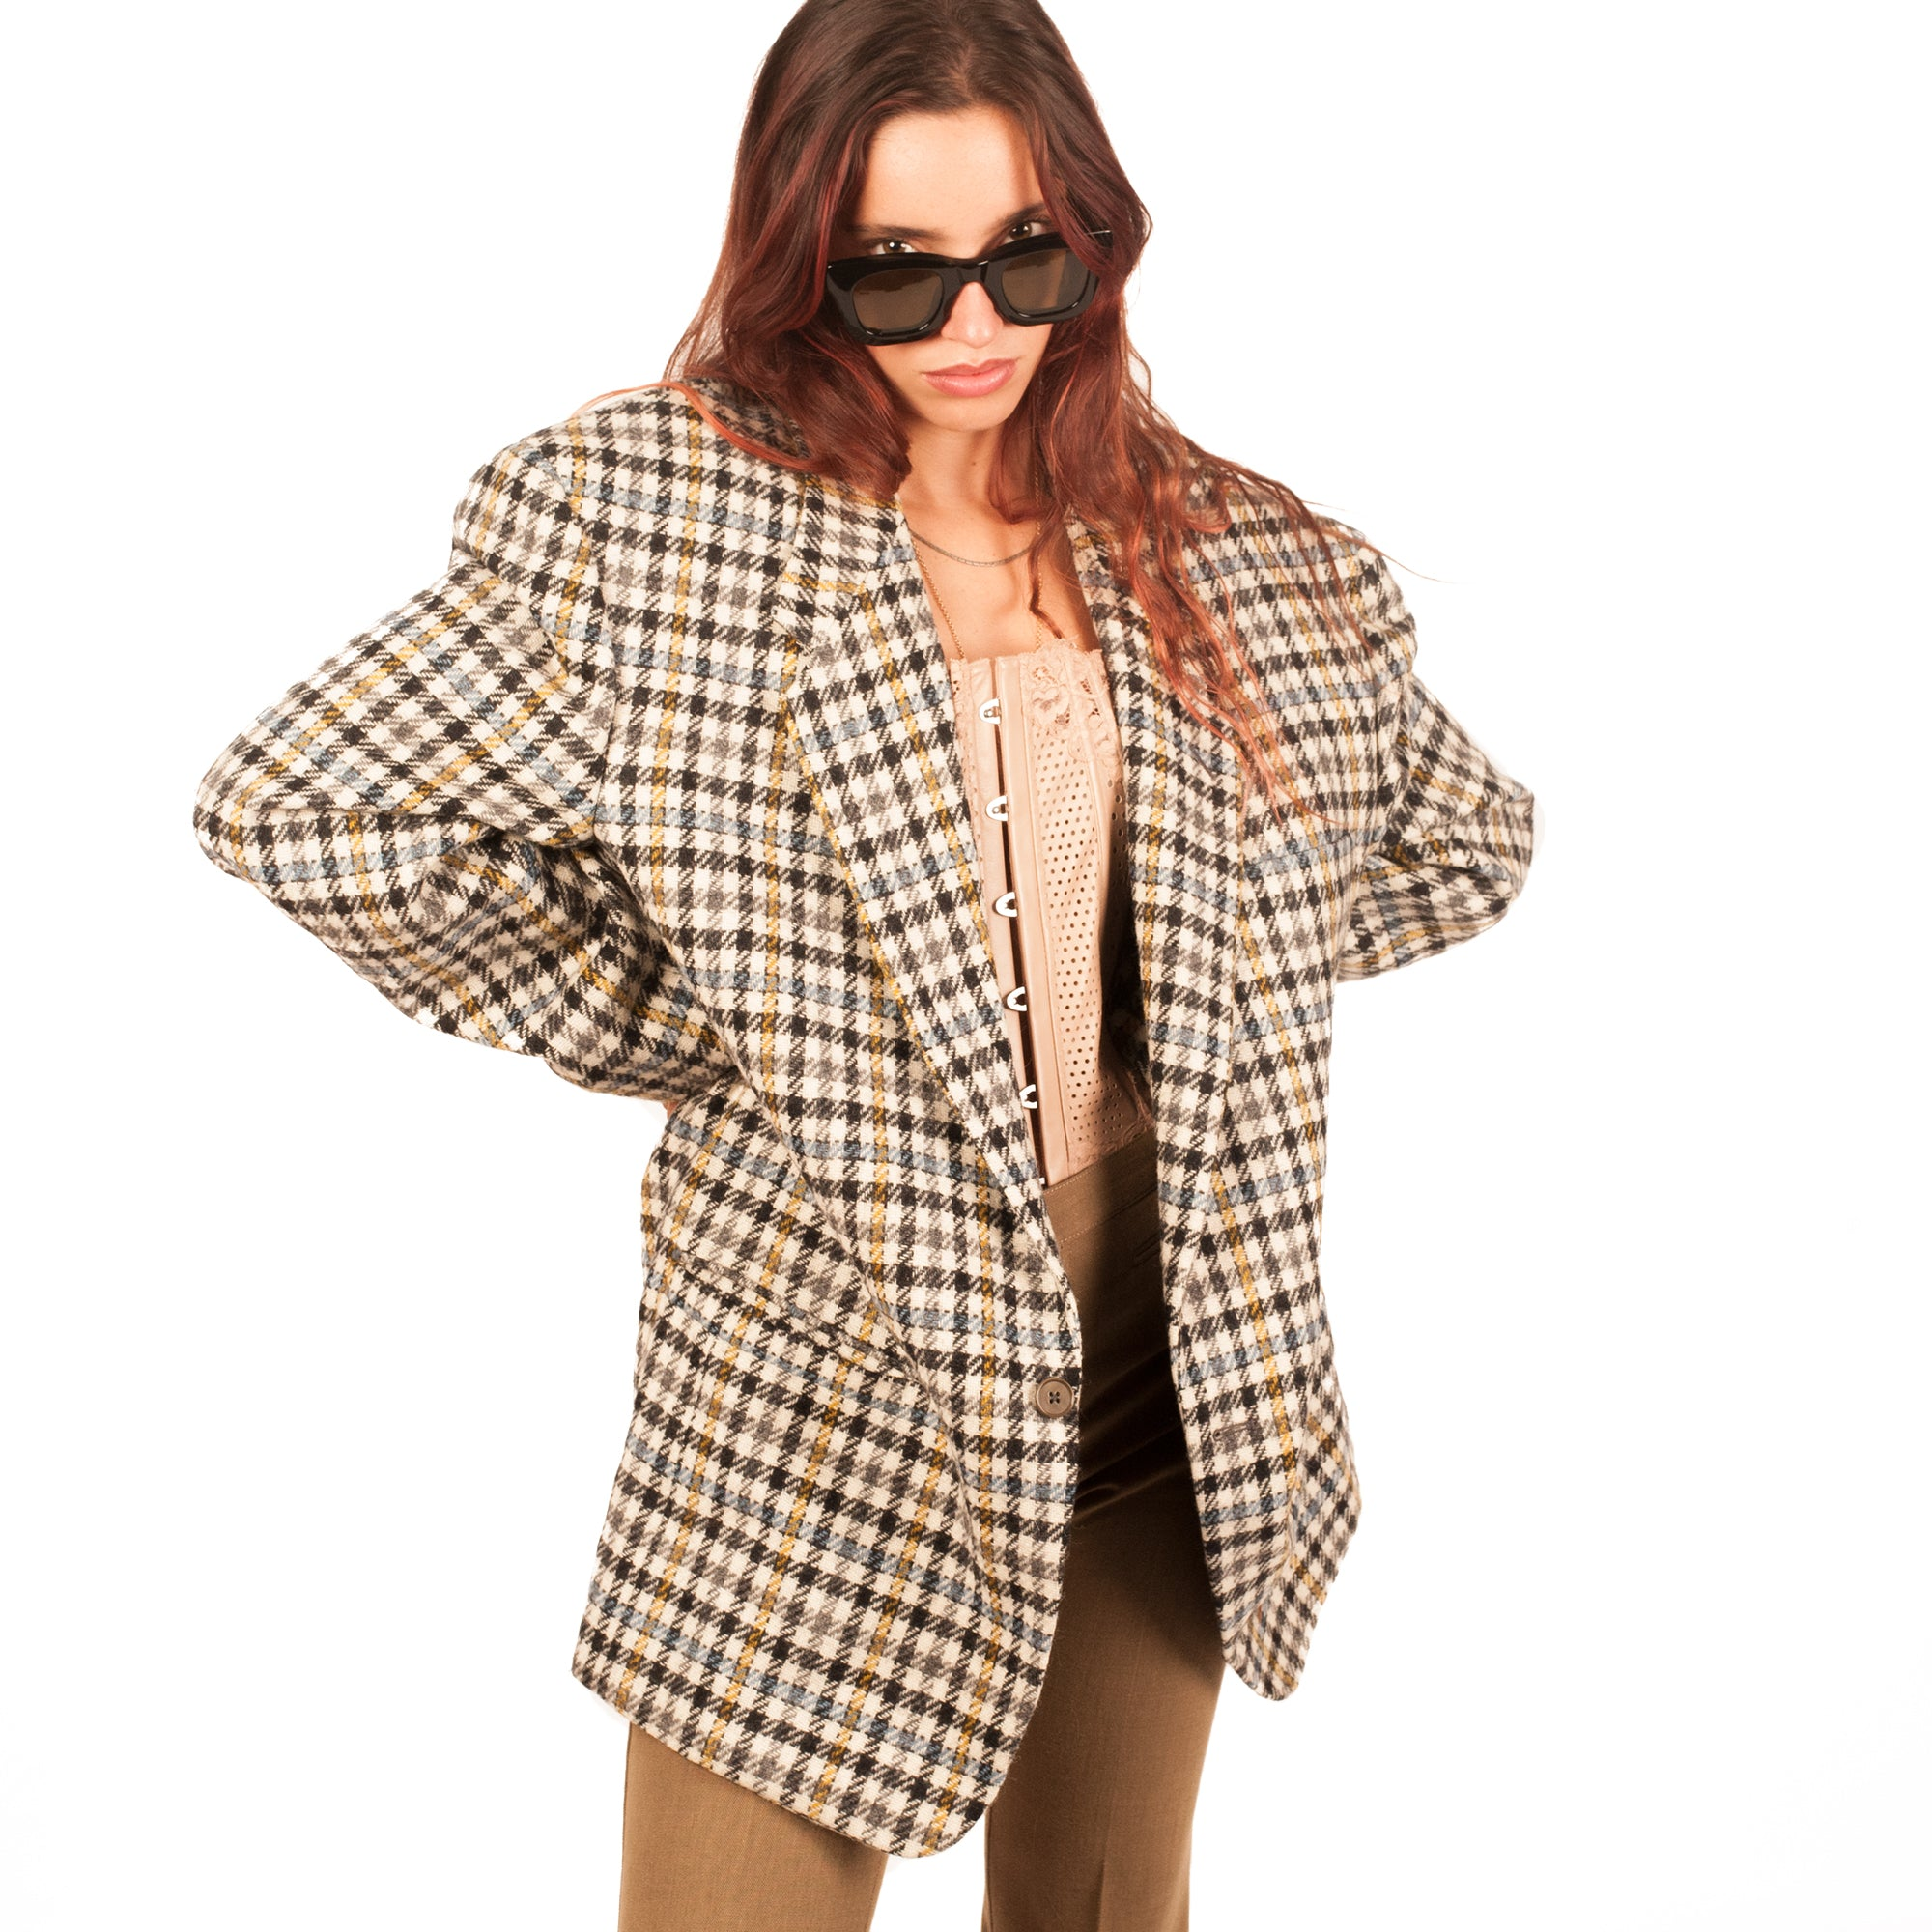 Gianni Versace Blazer (Multi Check) UK 8-14